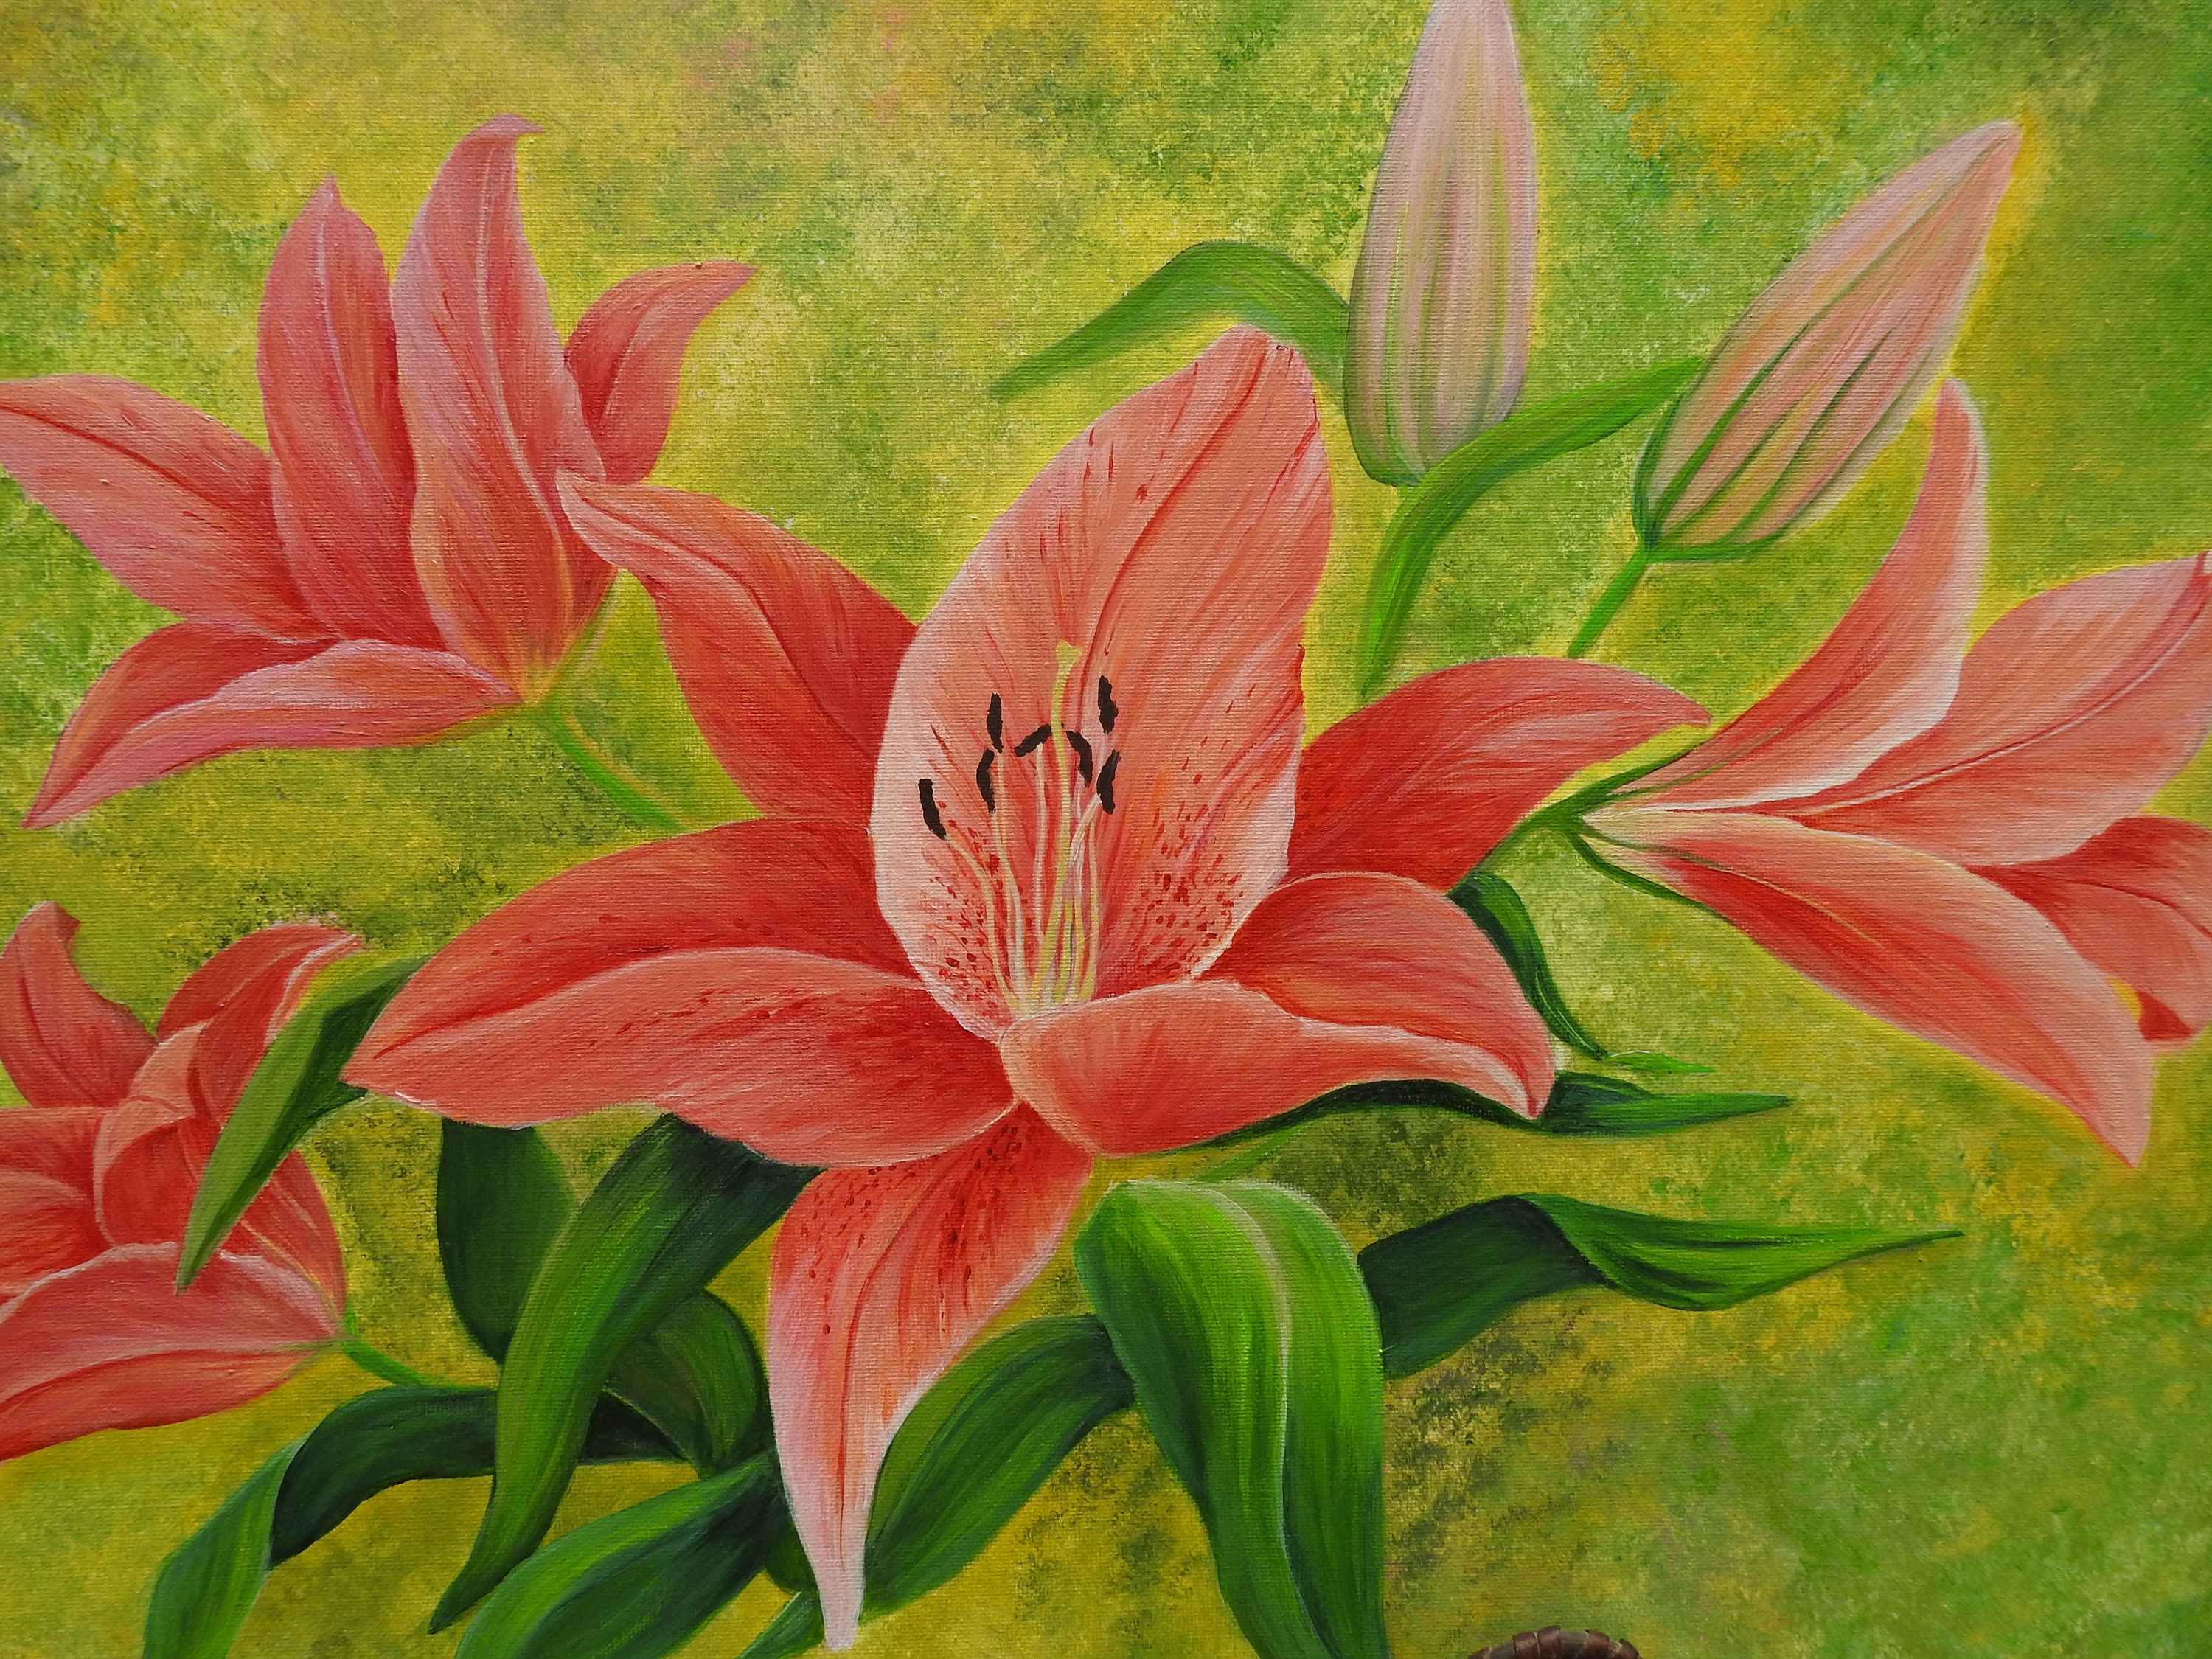 Stargazer Lilies Flowers Painting Lily Flowers Original Acrylic Painting On Canvas Lilies Painting